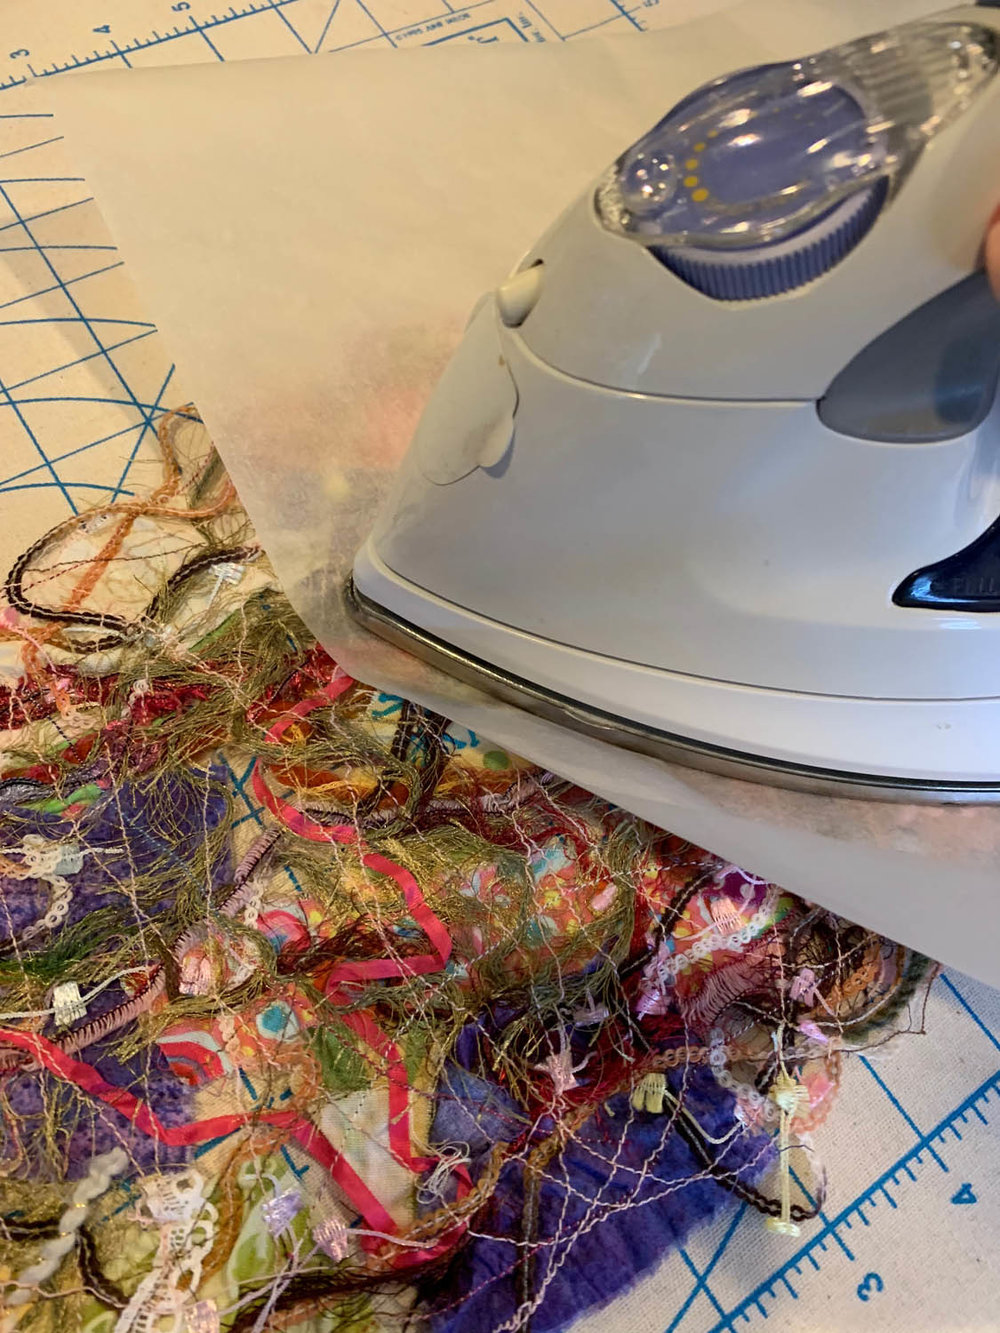 pressing and ironing thread-quilted upcycled fibers flat after rinsing and drying